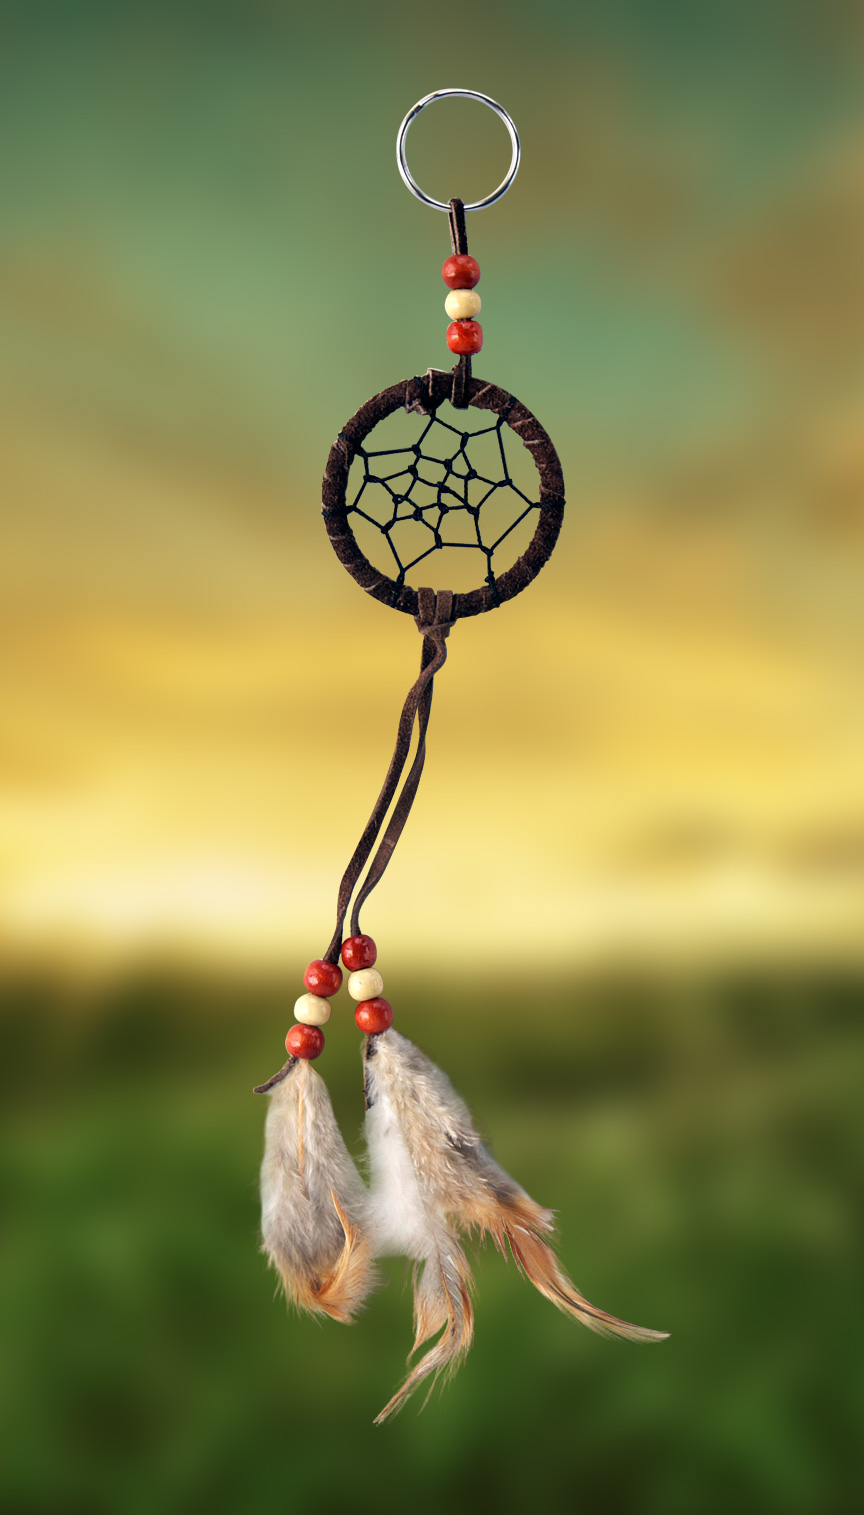 Shows an image of dreamcatcher owg009 on a scenic background